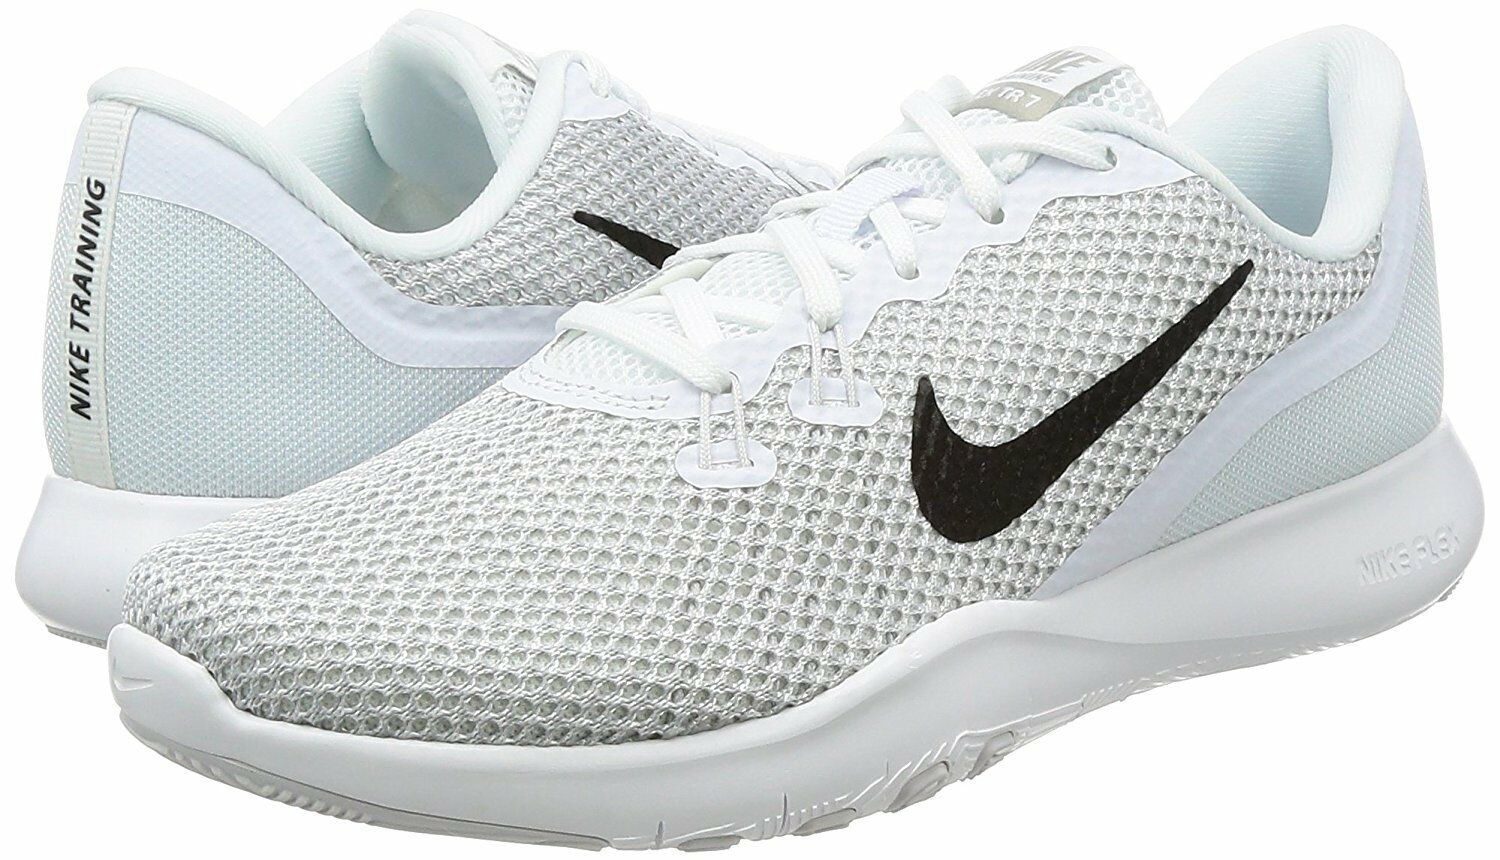 NIKE Women's Flex 7 Cross Trainer White/Metallic Silver-Pure Platinum 10.5 (B/M)